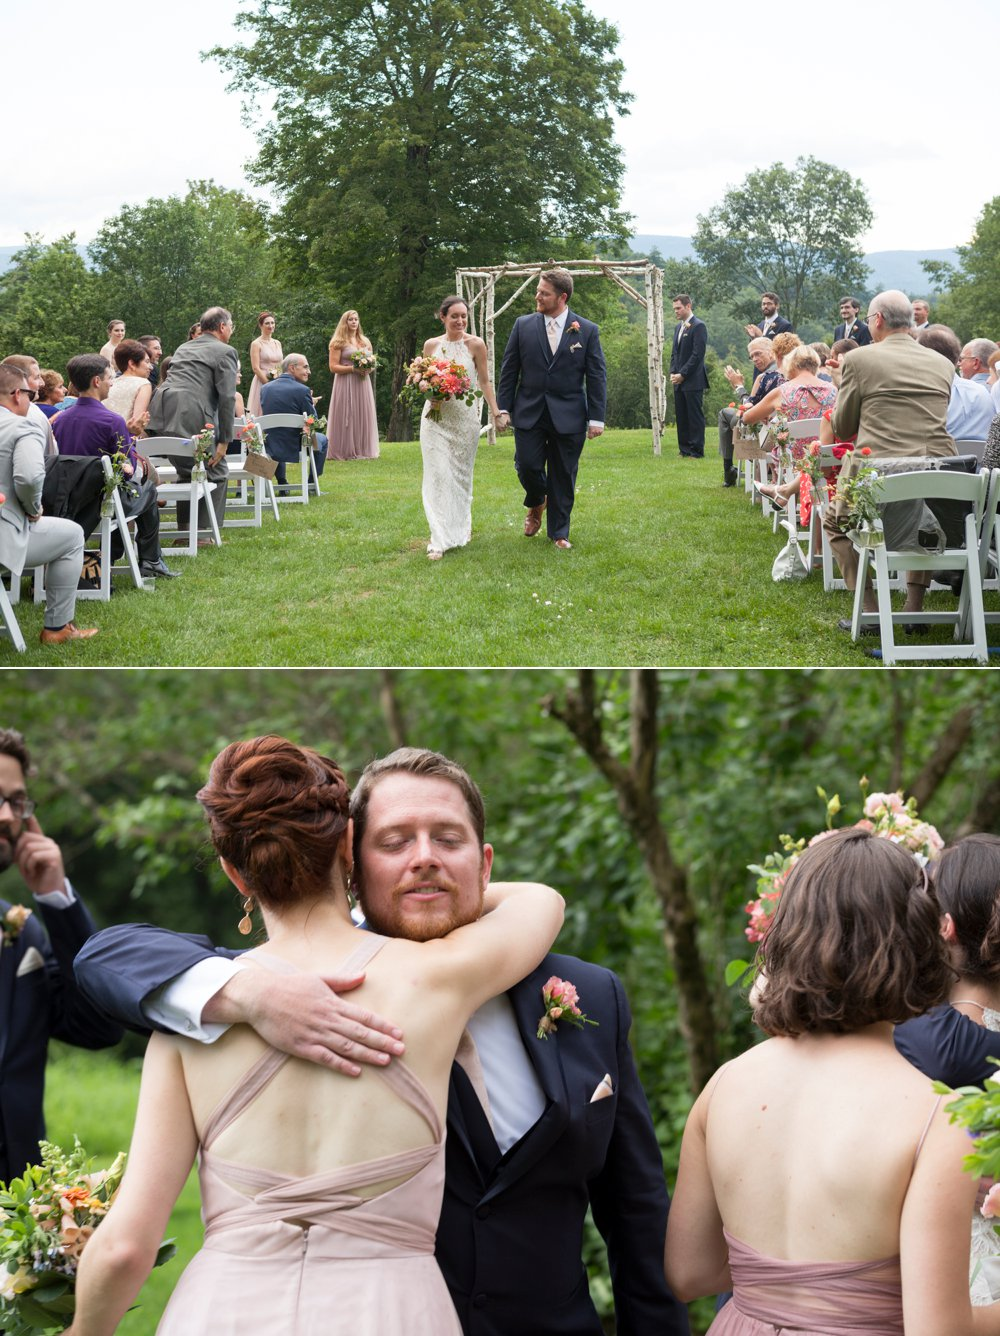 SomerbyJonesPhotography_WestMountainInnWedding_WestMountainInn_RusticVermontWedding_0029.jpg